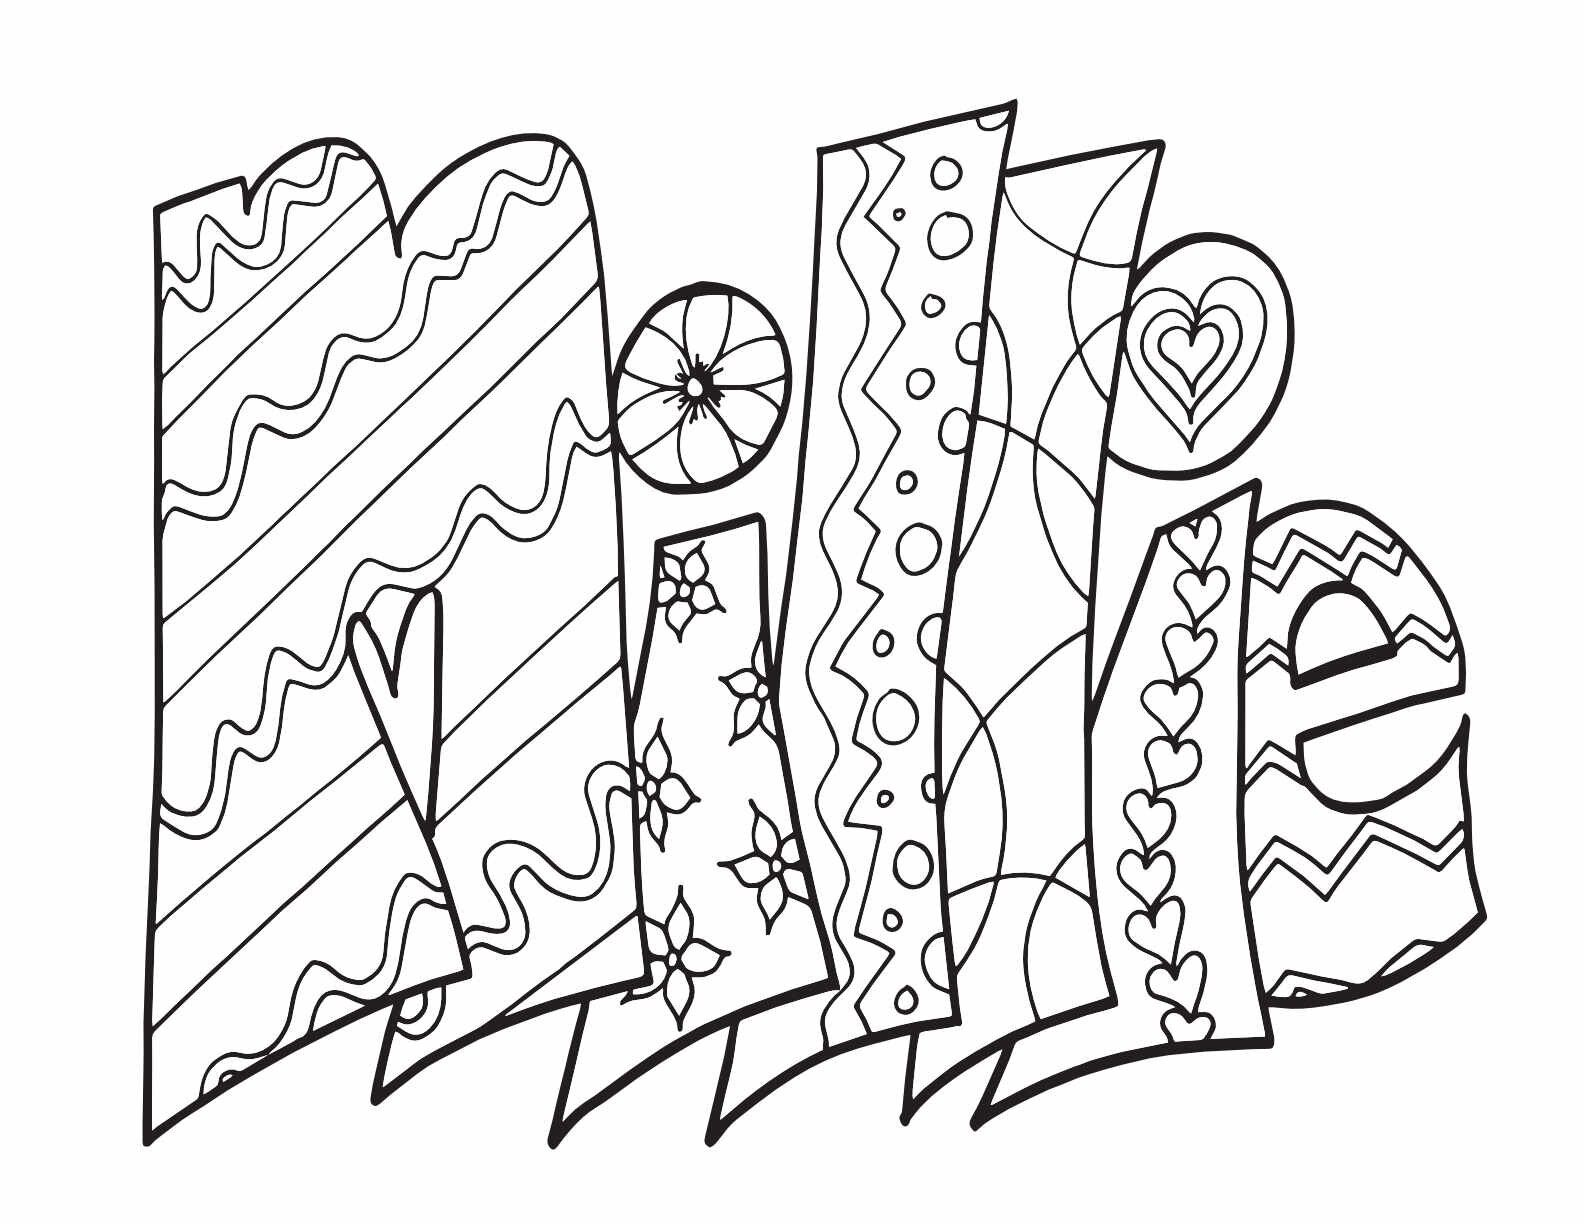 Pin By Lemonade Mouth On Wallpaper In 2020 Name Coloring Pages Coloring Pages For Girls Printed Pages